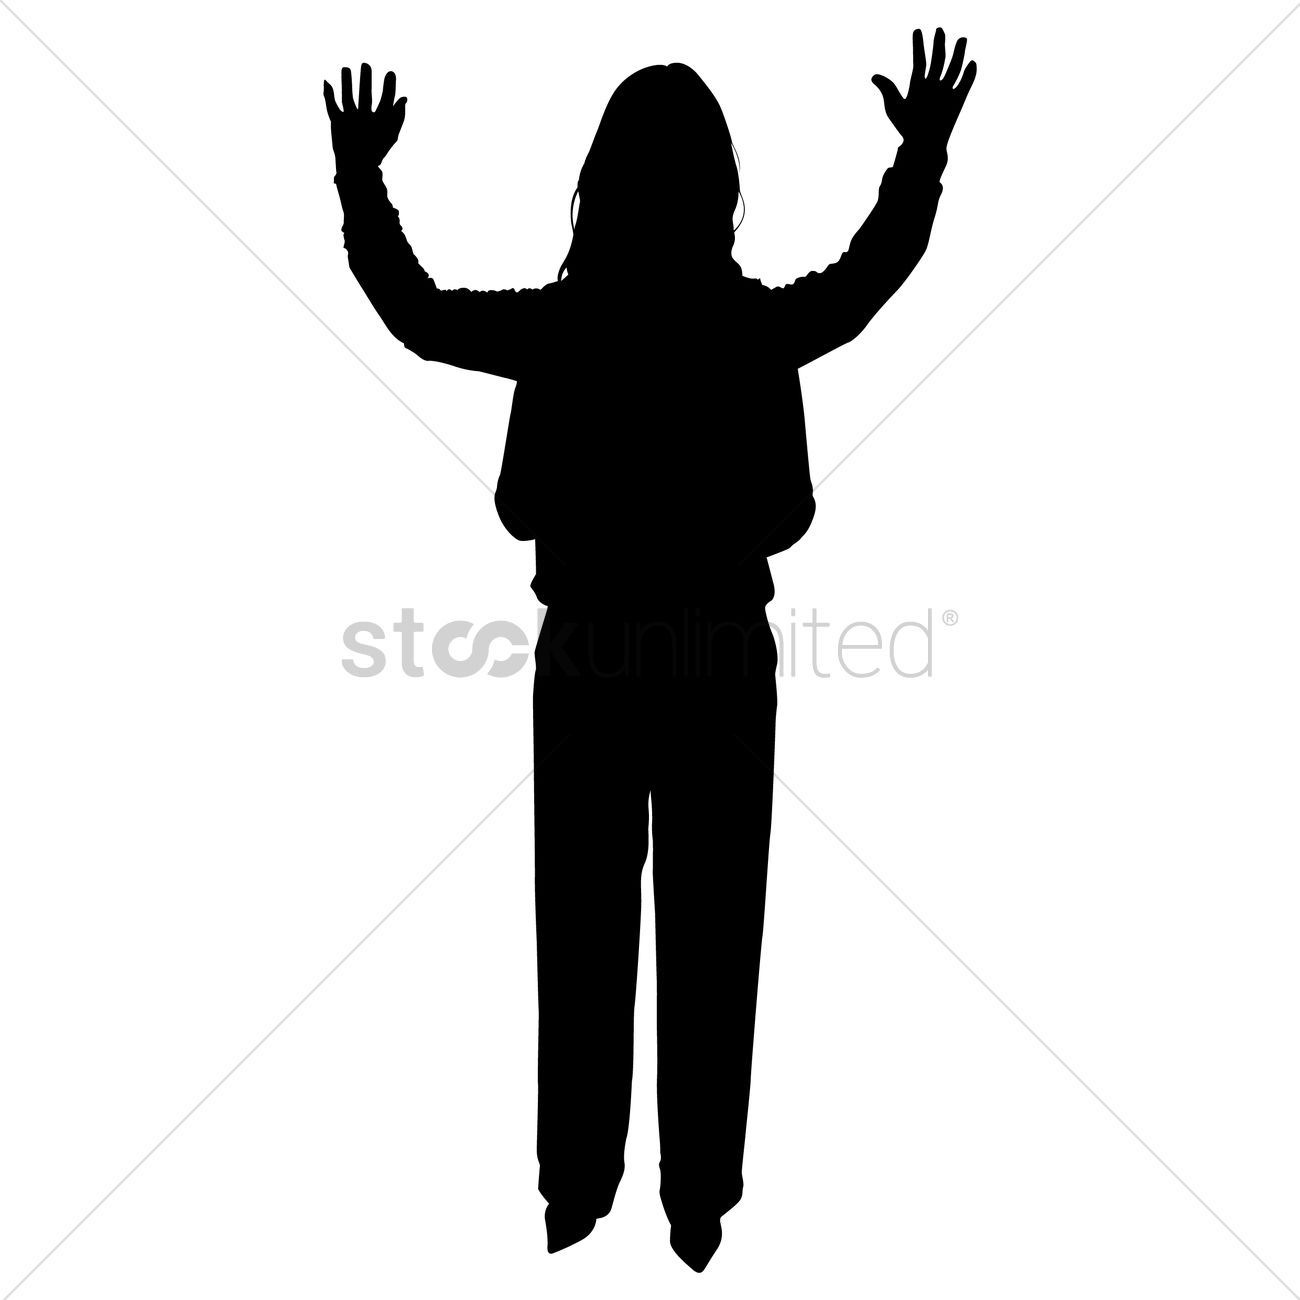 Woman with arms raised clipart vector free library Silhouette of a woman with hands raised Vector Image ... vector free library